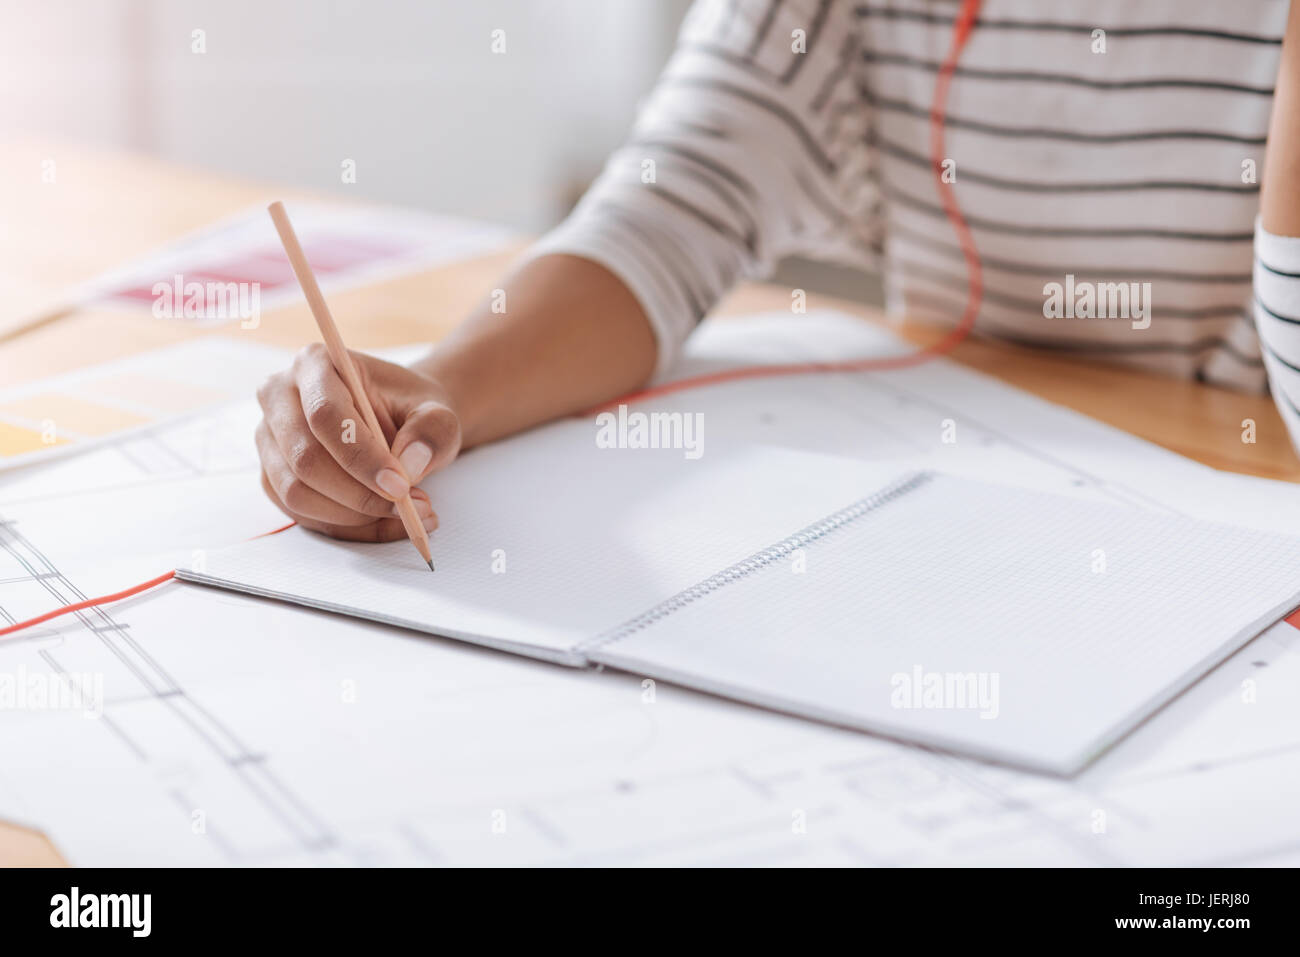 Close up of students notes lying on the table - Stock Image